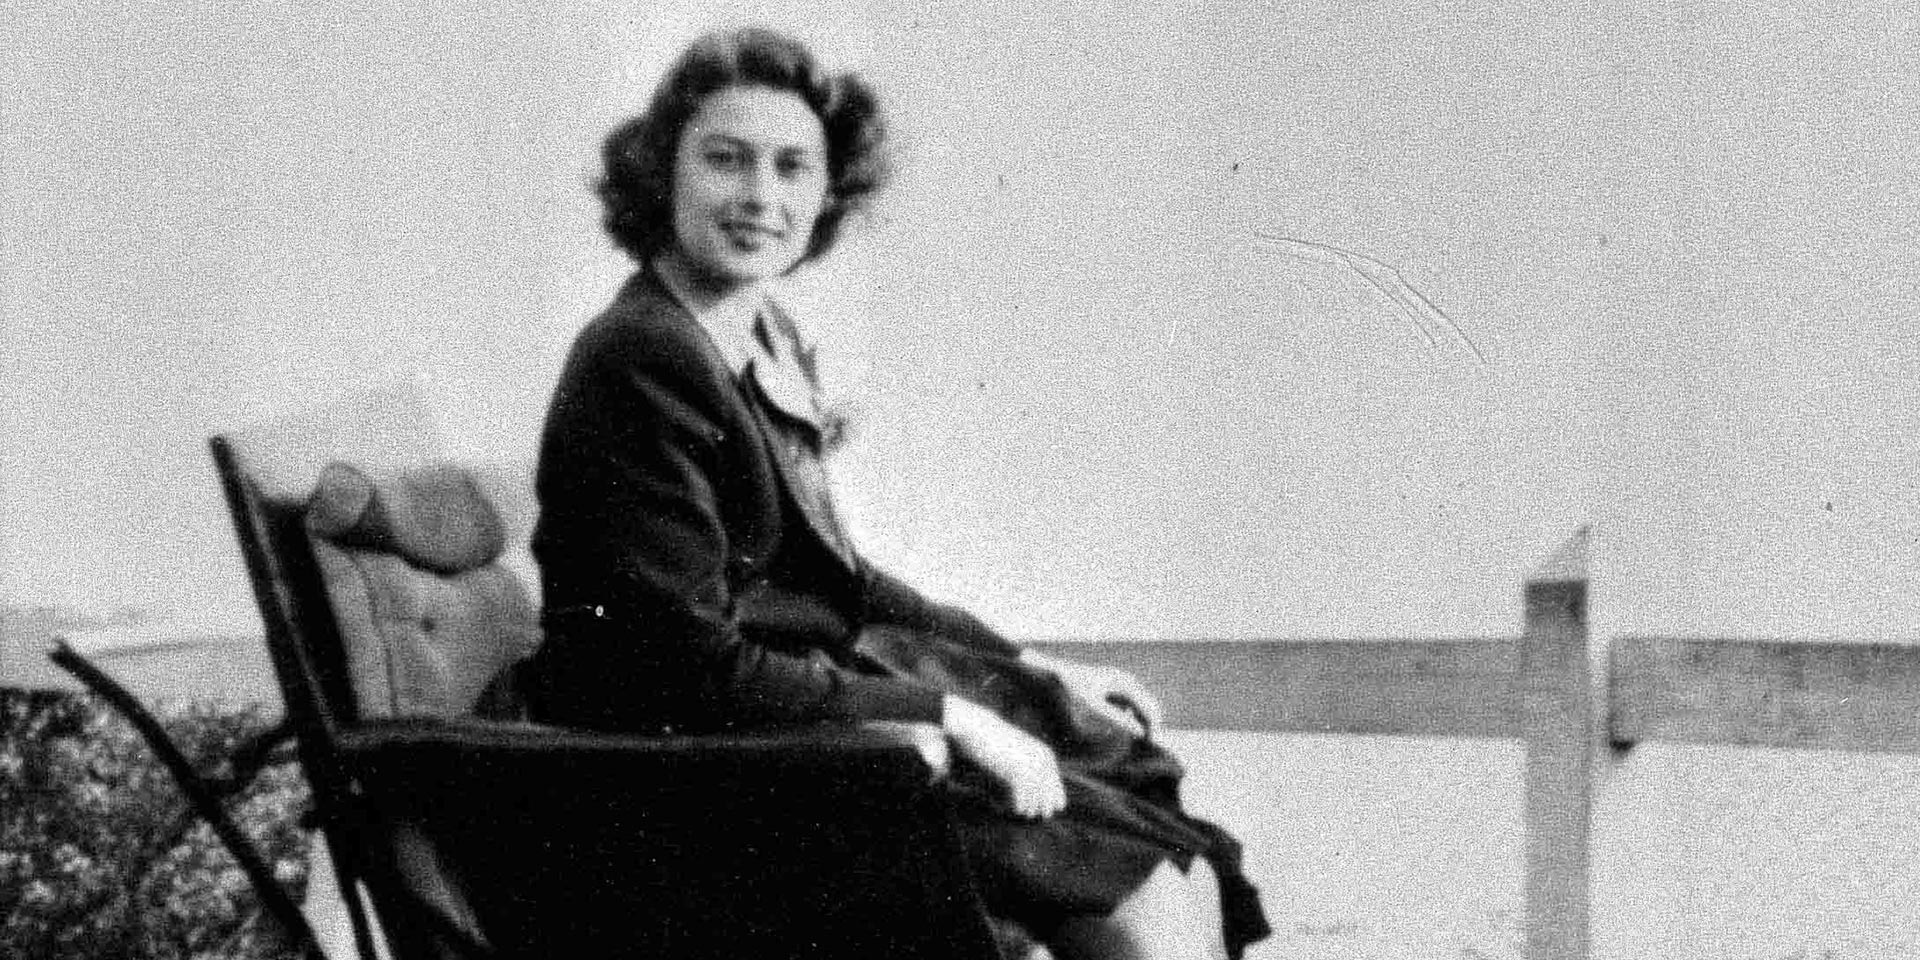 Photograph of Violette Szabo when recovering from injuring her ankle in a practice parachute jump.